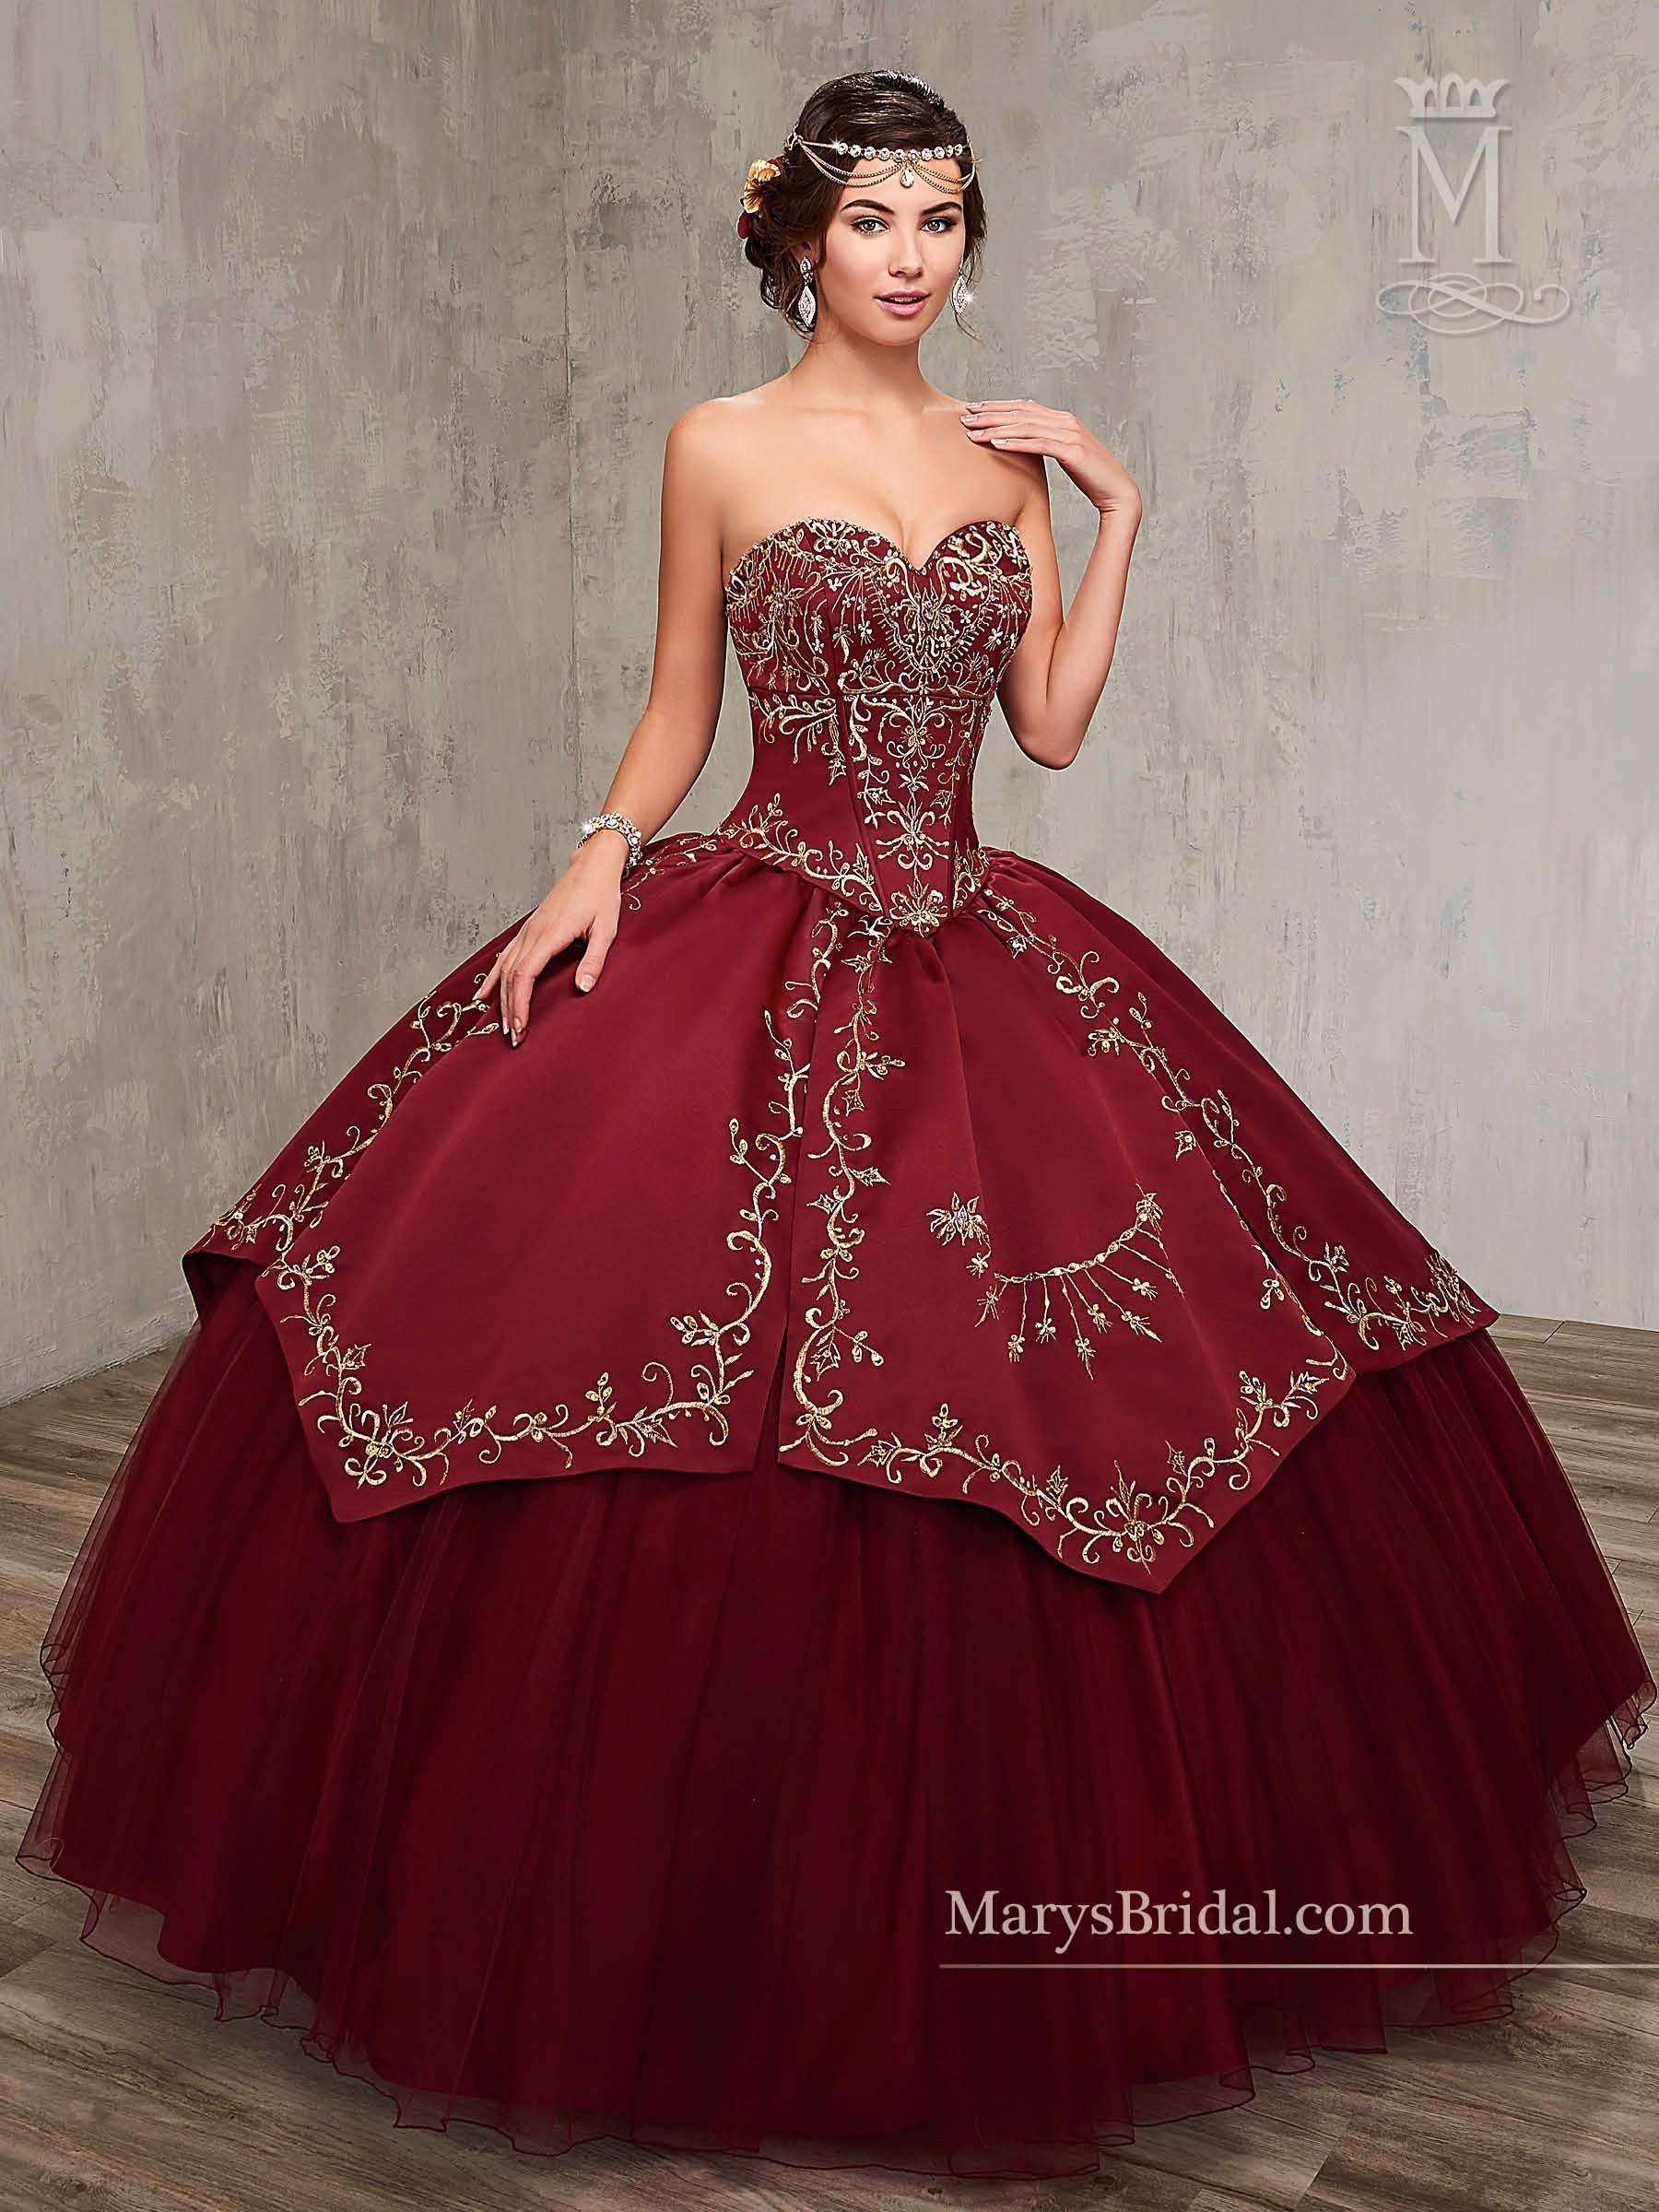 Charro Strapless Quinceanera Dress By Mary S Bridal Princess 4q516 Quincenera Dresses Quinceanera Dresses Mexican Quinceanera Dresses